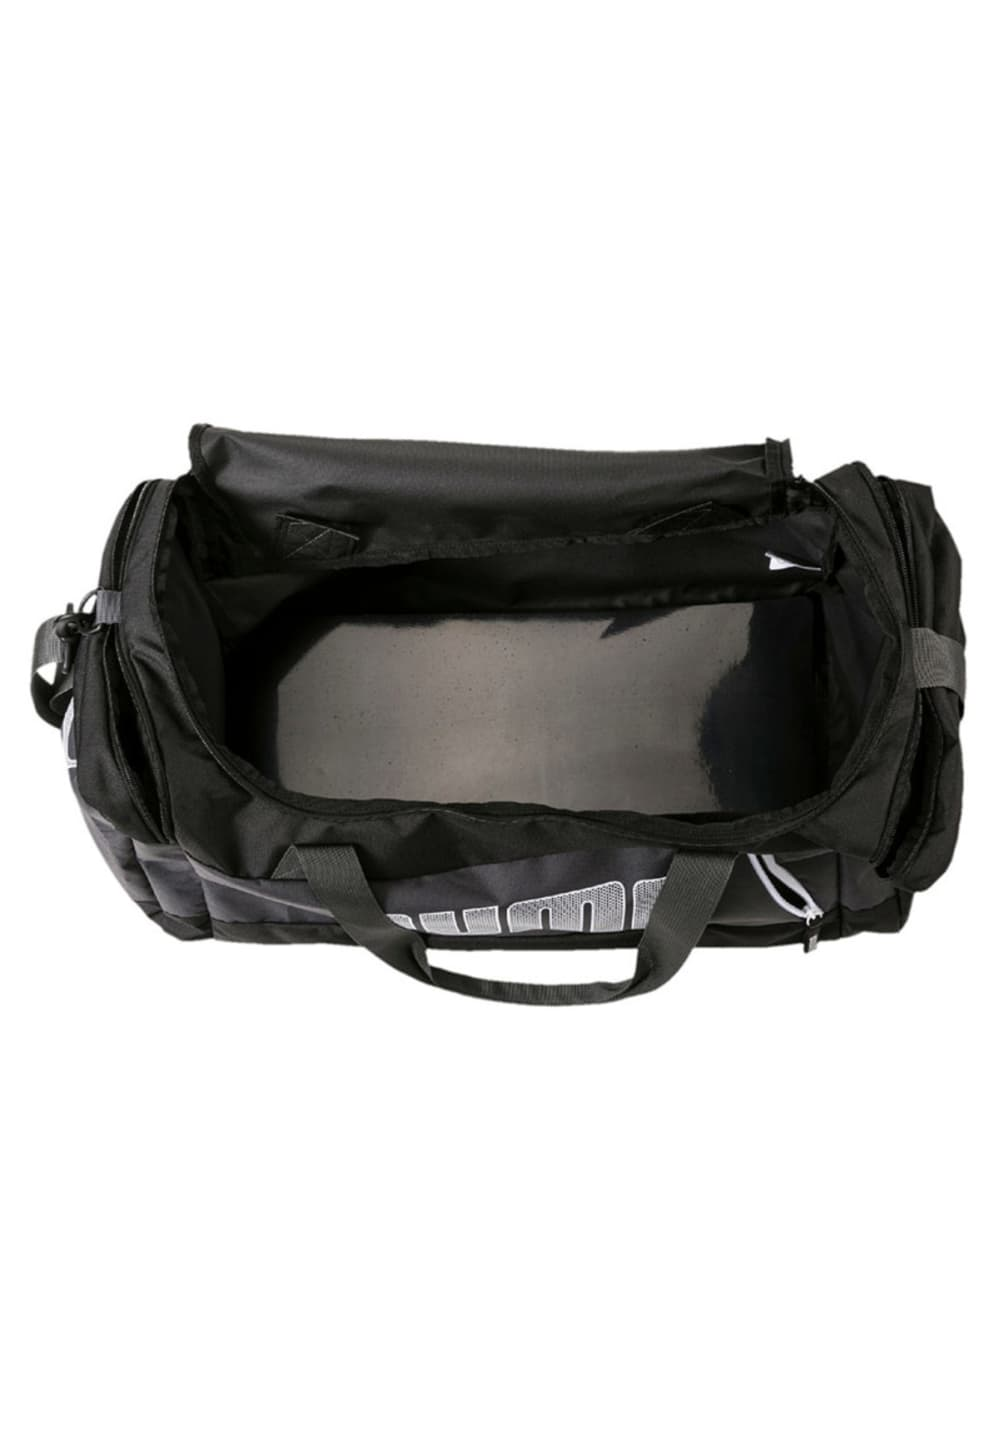 Previous. Next. -50%. This product is currently out of stock. Puma. Fundamentals  Sports Bag M II ... 50b2e501f9b2f